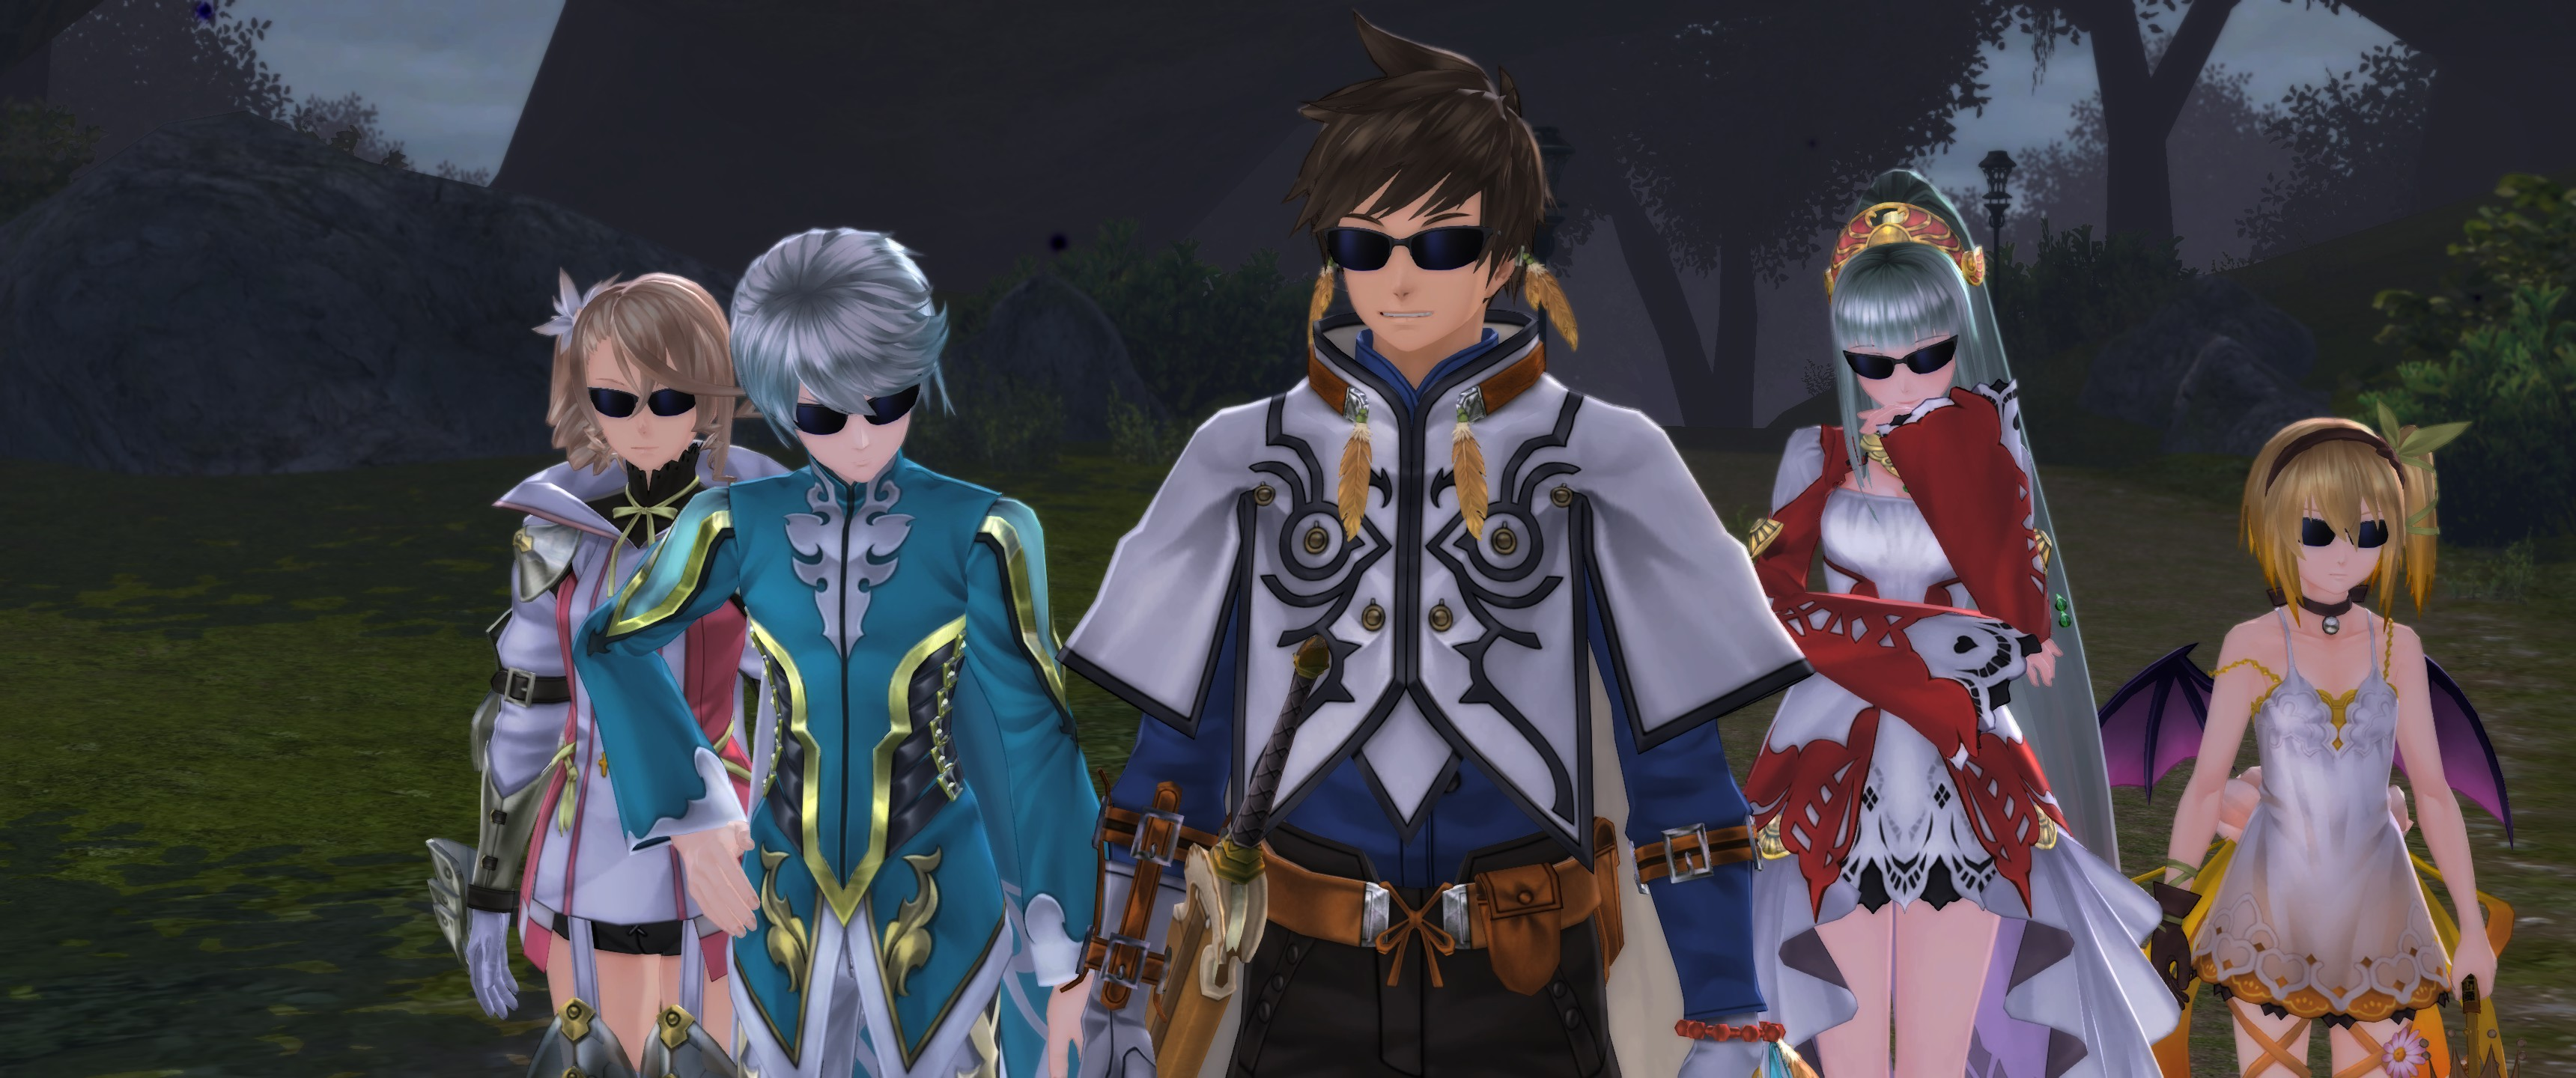 WSGF • View topic - PROPS to Tales of Zestiria